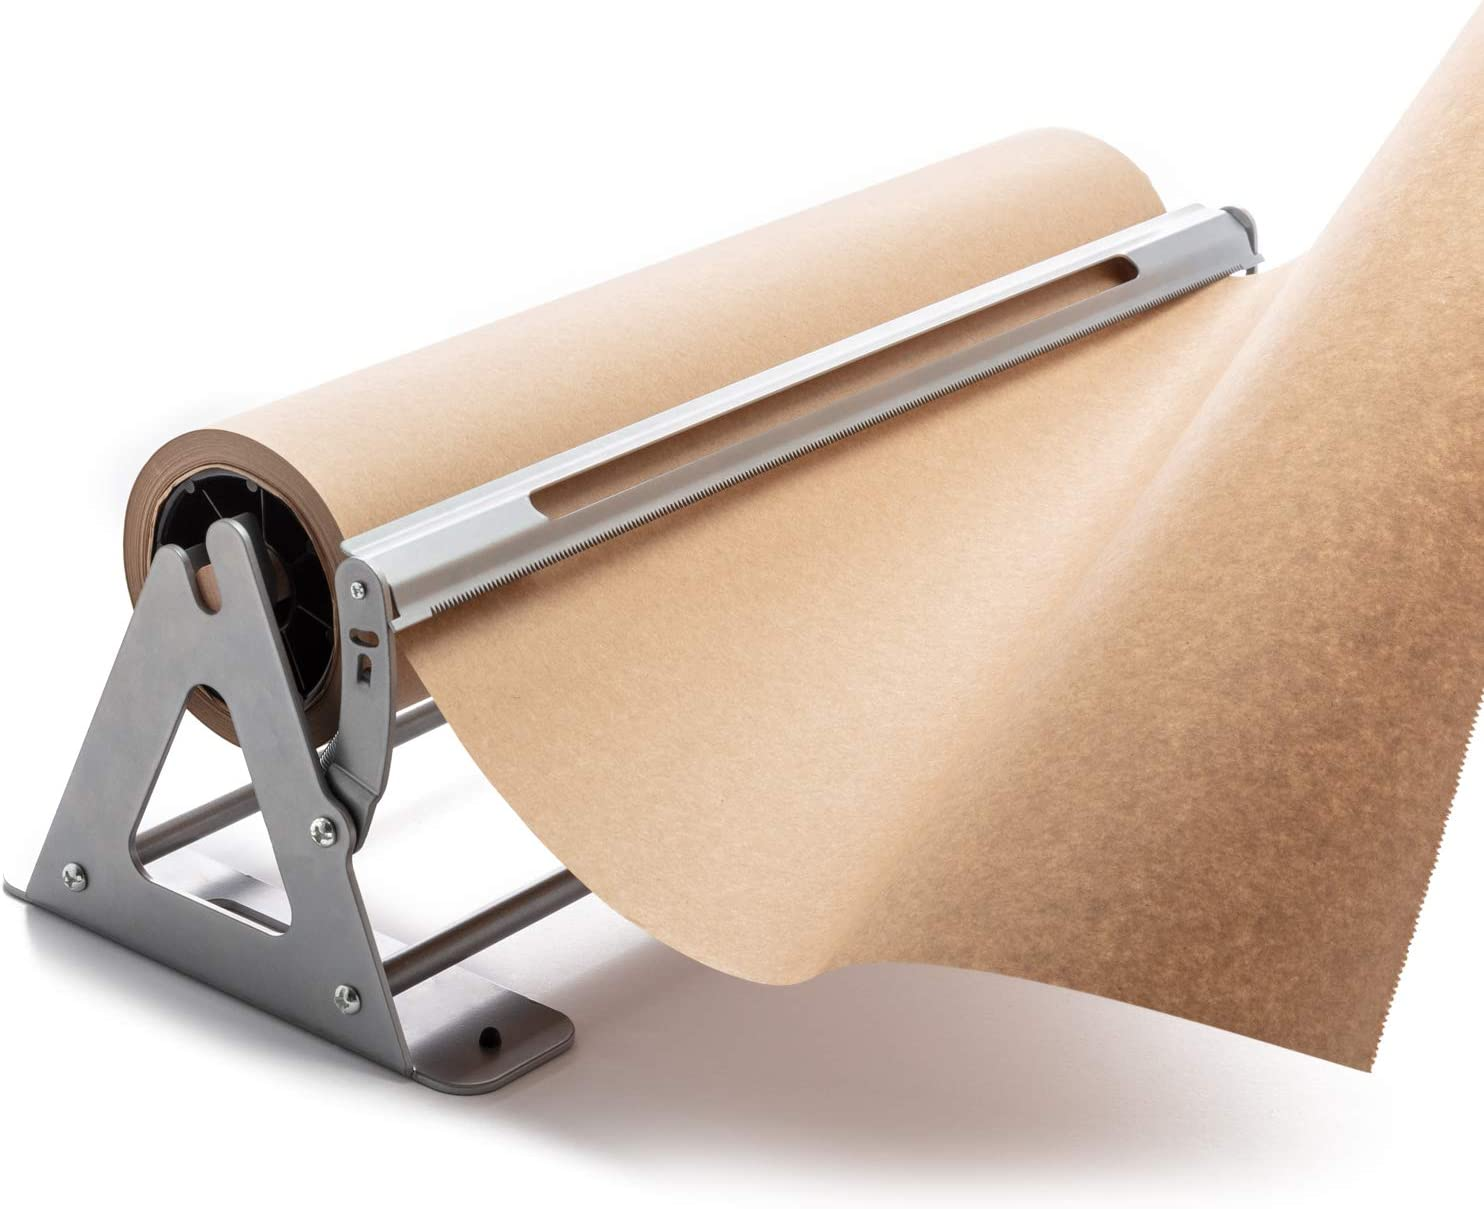 Paper Roll Cutter - Butcher Paper Dispenser - Heavy Duty 24 Inch Paper Roll Holder and Cutter - Sturdy Construction, Rubber Feet, Tabletop, Wall Mount, Serrated Edge - Butcher Paper Holder and Cutter